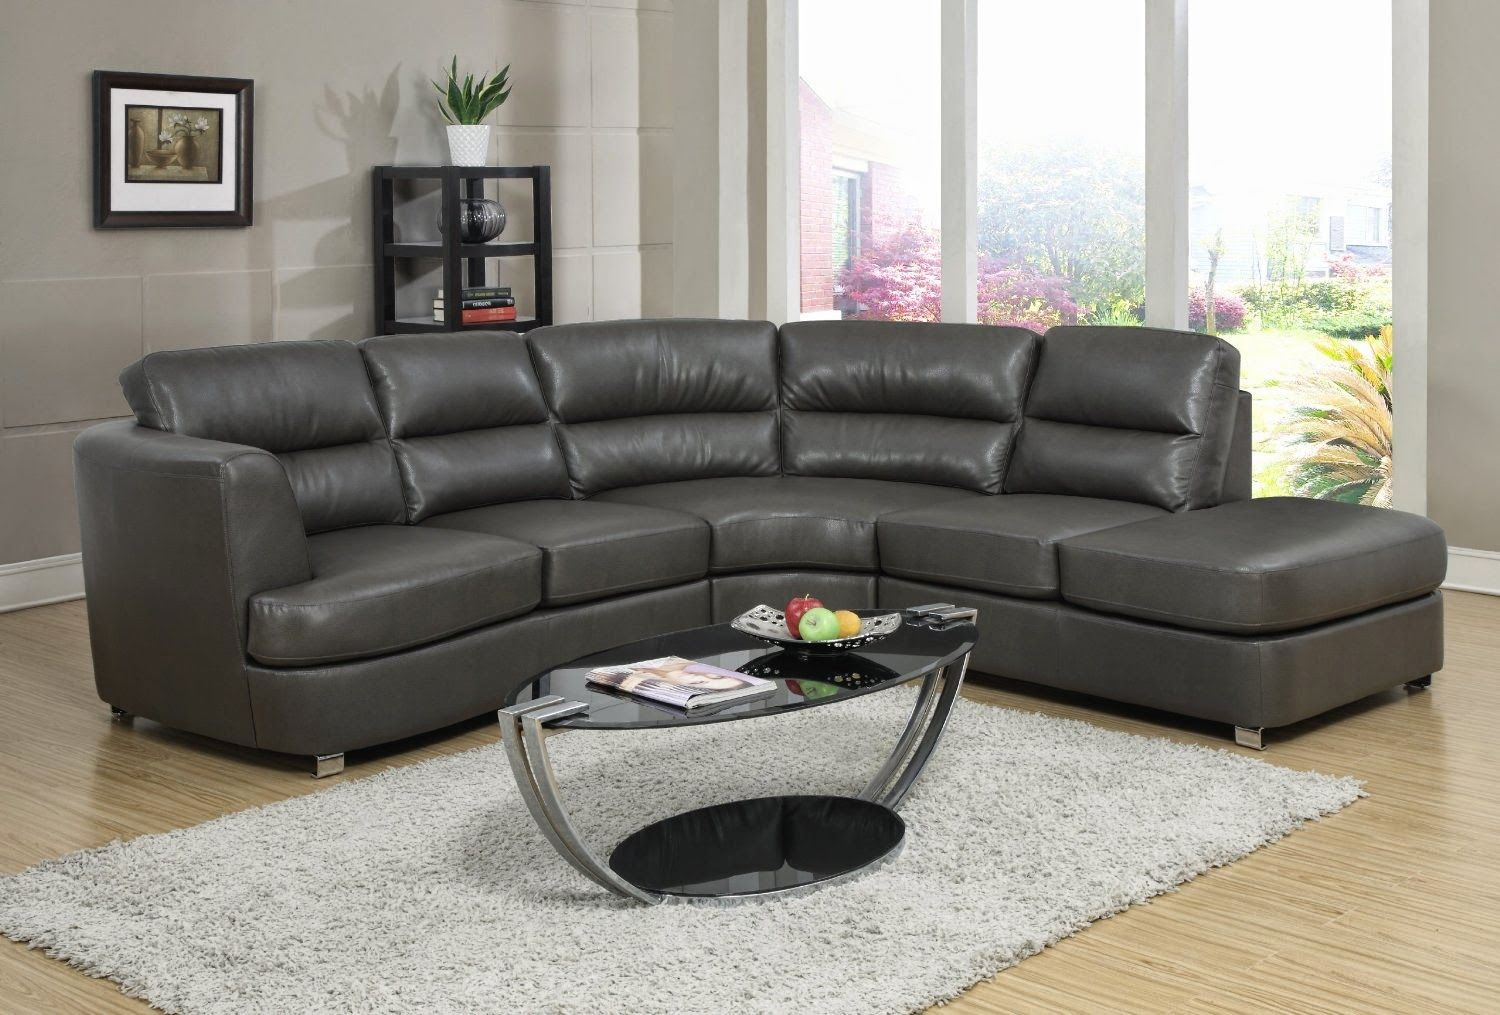 Awesome Dark Gray Sofa With Sofa Angela Grey Leather Couch Grey With Regard To Gina Grey Leather Sofa Chairs (Image 3 of 25)